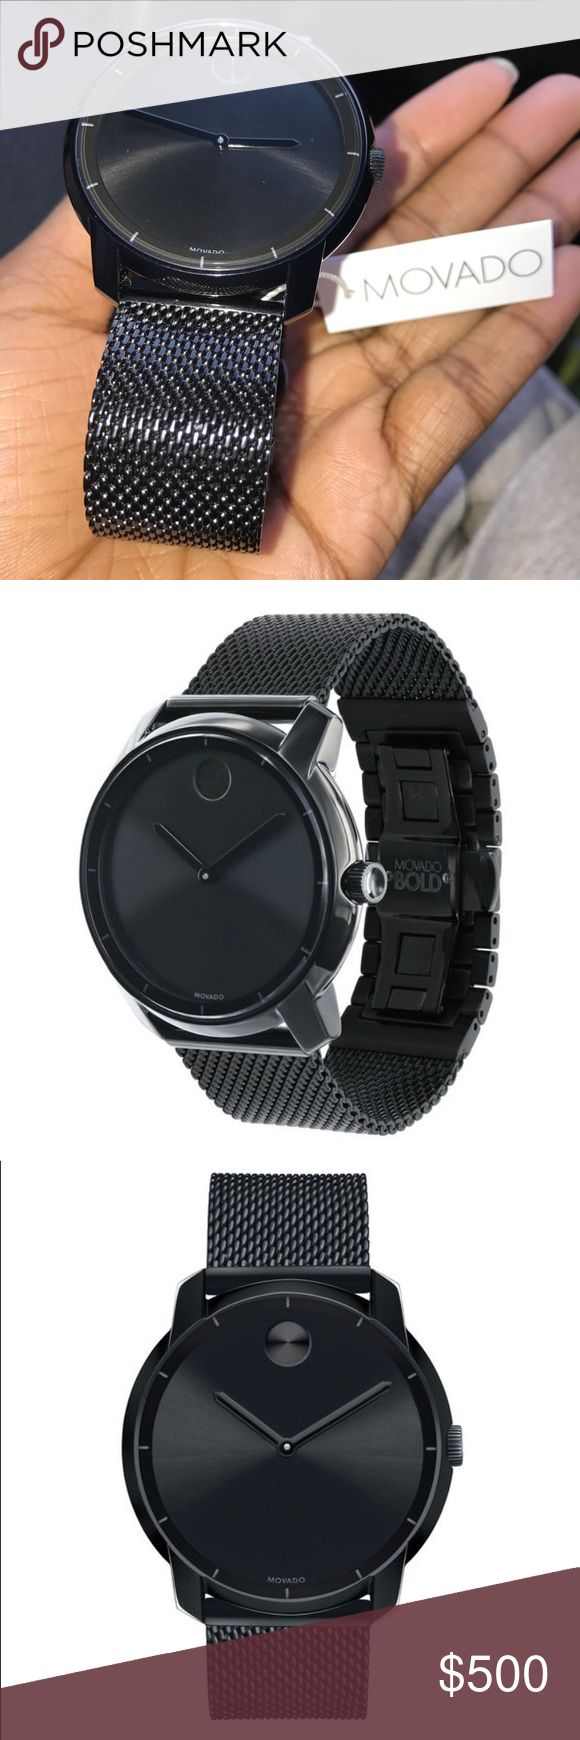 Movado Bold Large Movado BOLD watch, thin 44 mm black ion-plated stainless steel case, K1 crystal with a ring of highly reflective black metallization with grey hour index, black sunray dial with matching sunray dot and hands, black ion-plated stainless steel mesh-link bracelet with mesh-textured back sizing links and deployment clasp.  New with tag, no box Movado Accessories Watches